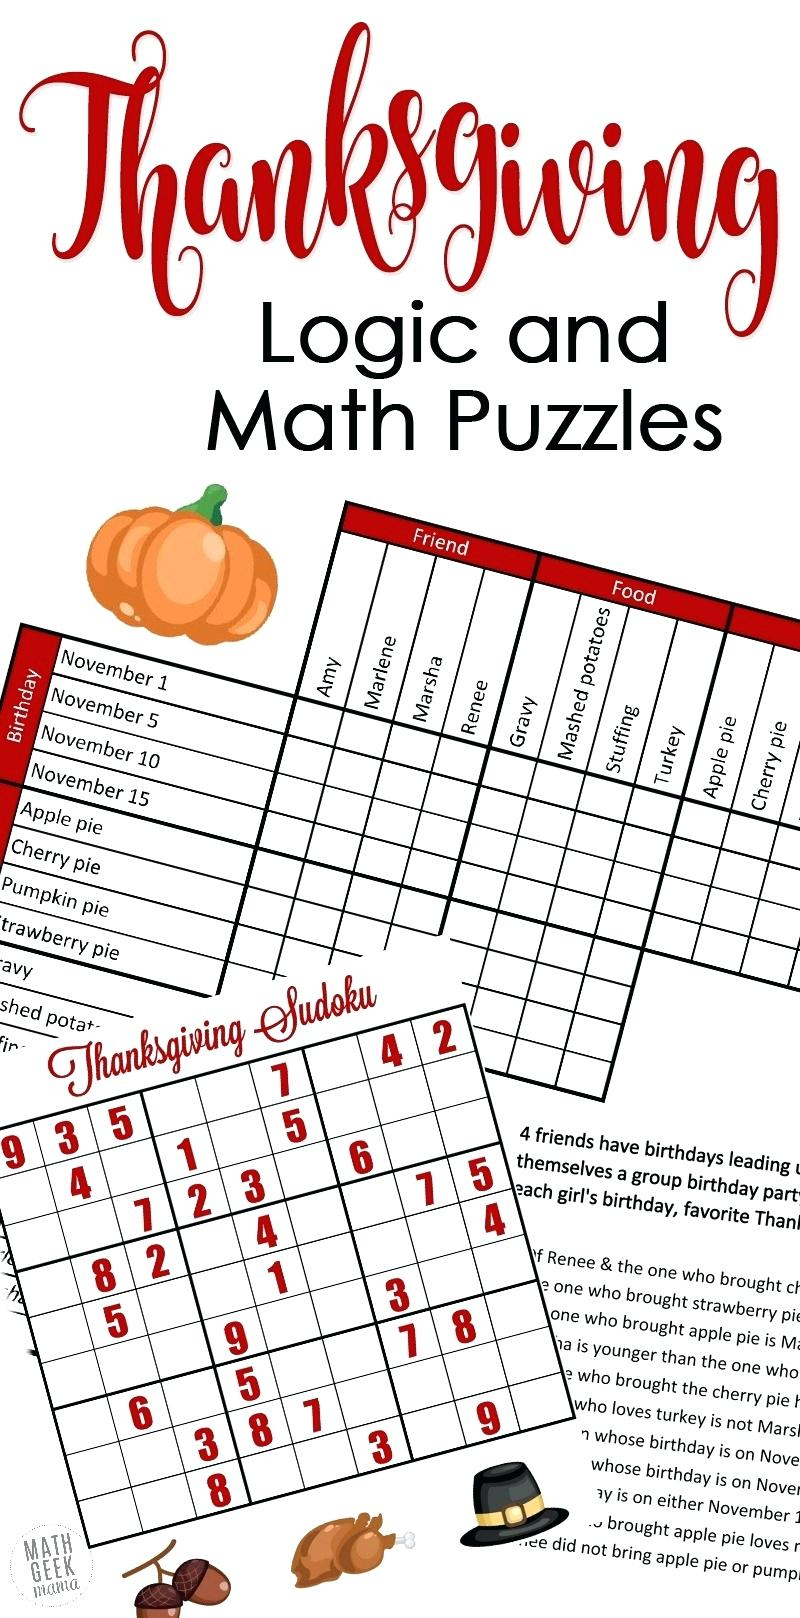 Logic Puzzles For High School It Logic Puzzles For High School - Free Printable Logic Puzzles For Middle School